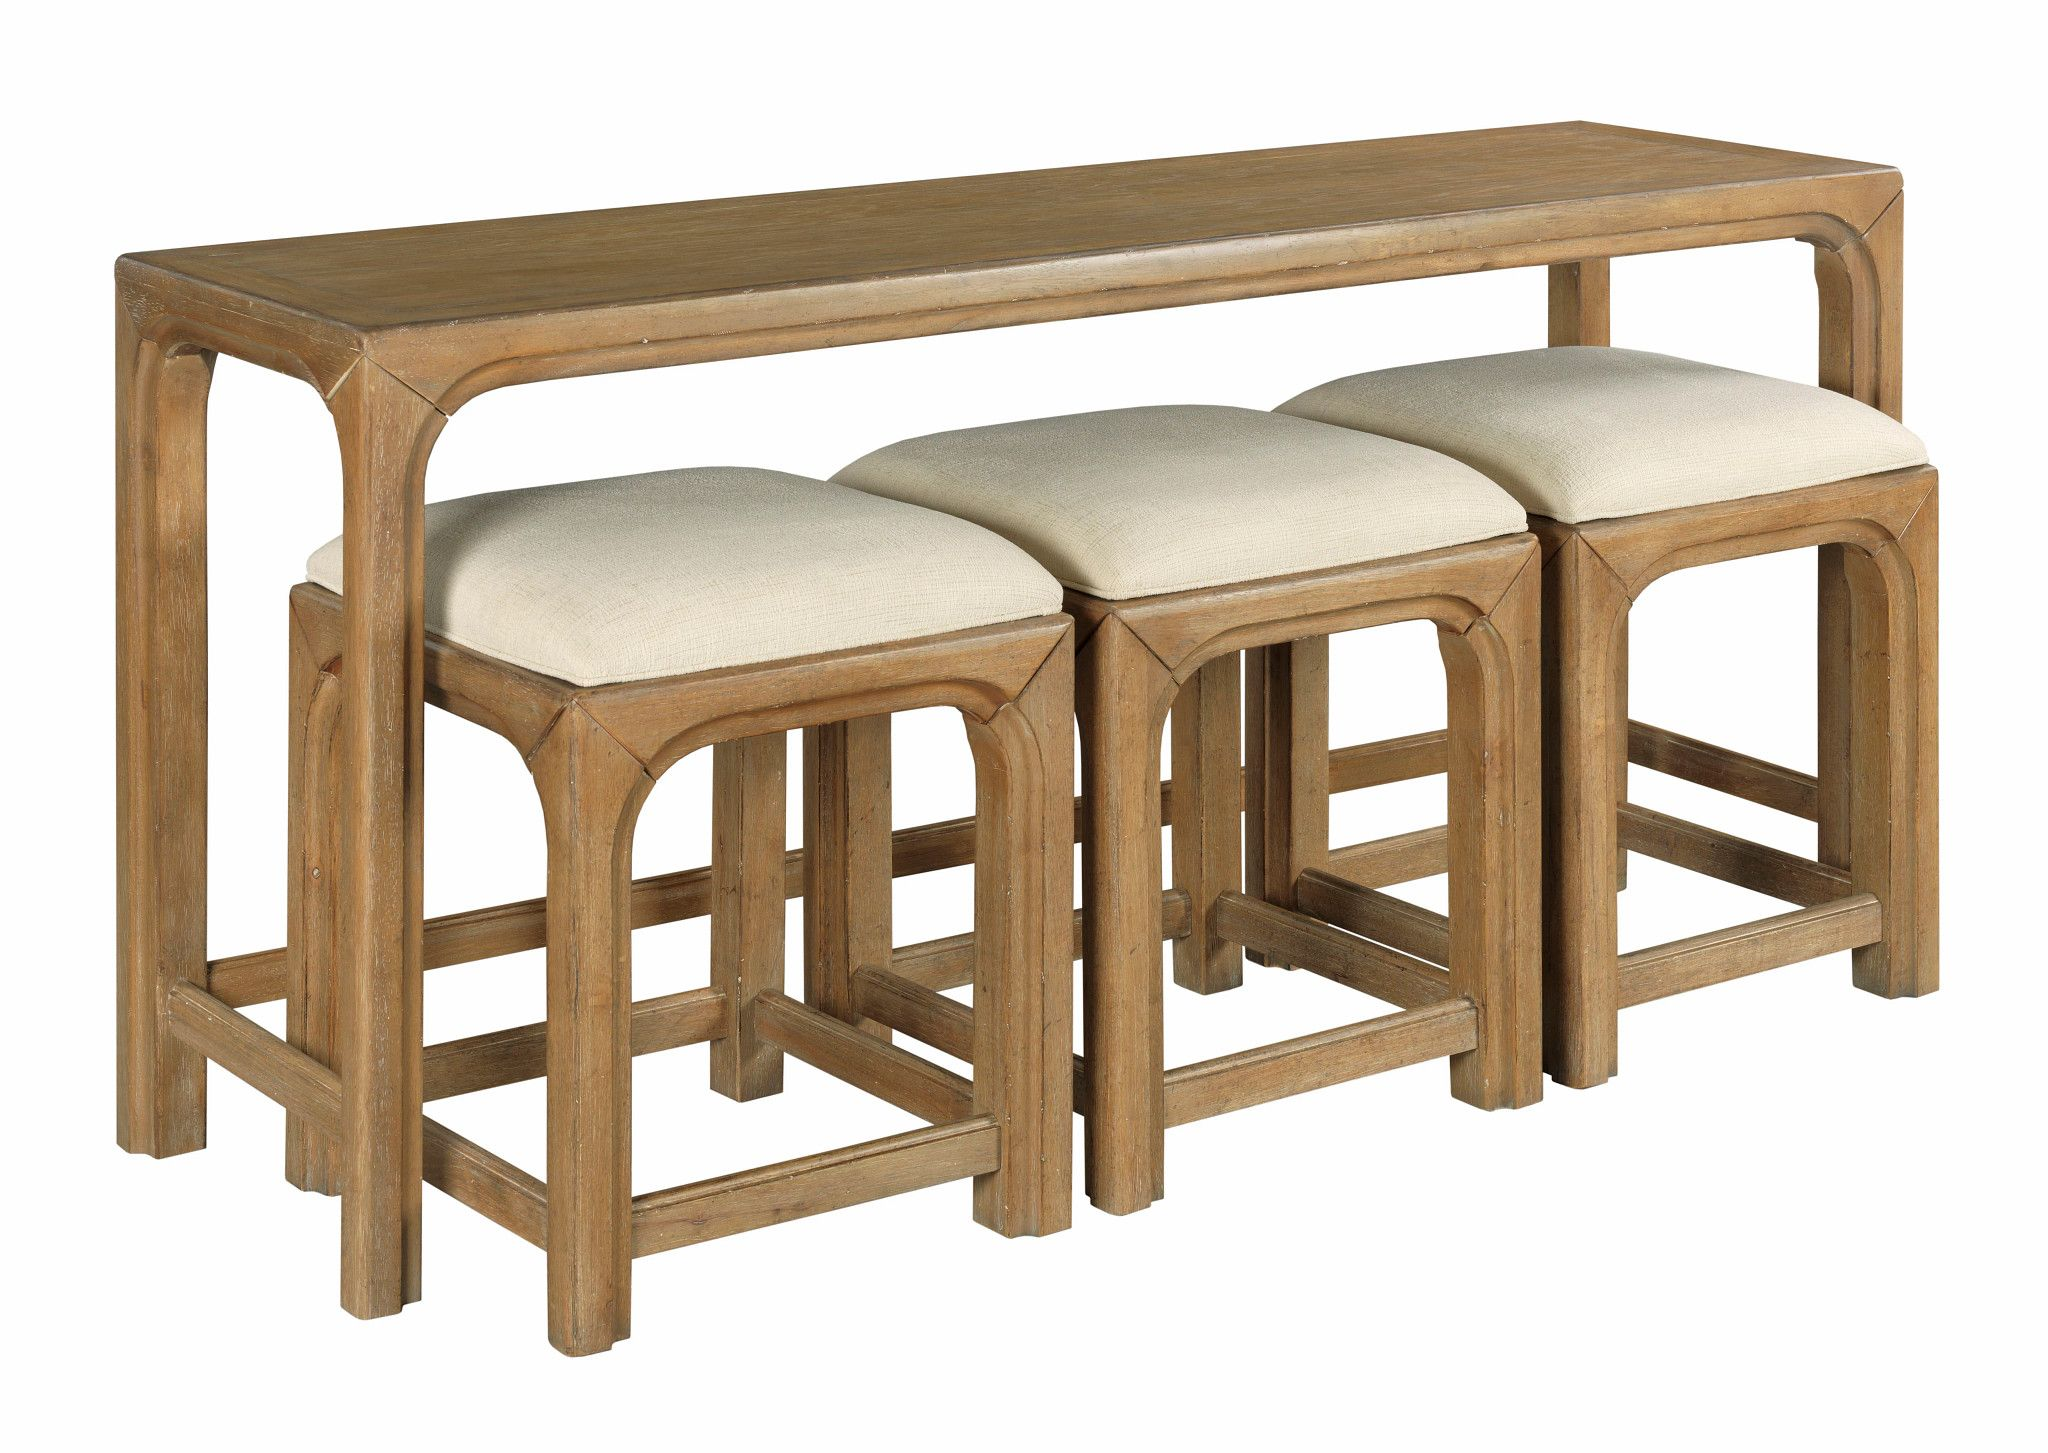 Jetson Sofa Bar Table with Stools by Table Trends at Sprintz Furniture